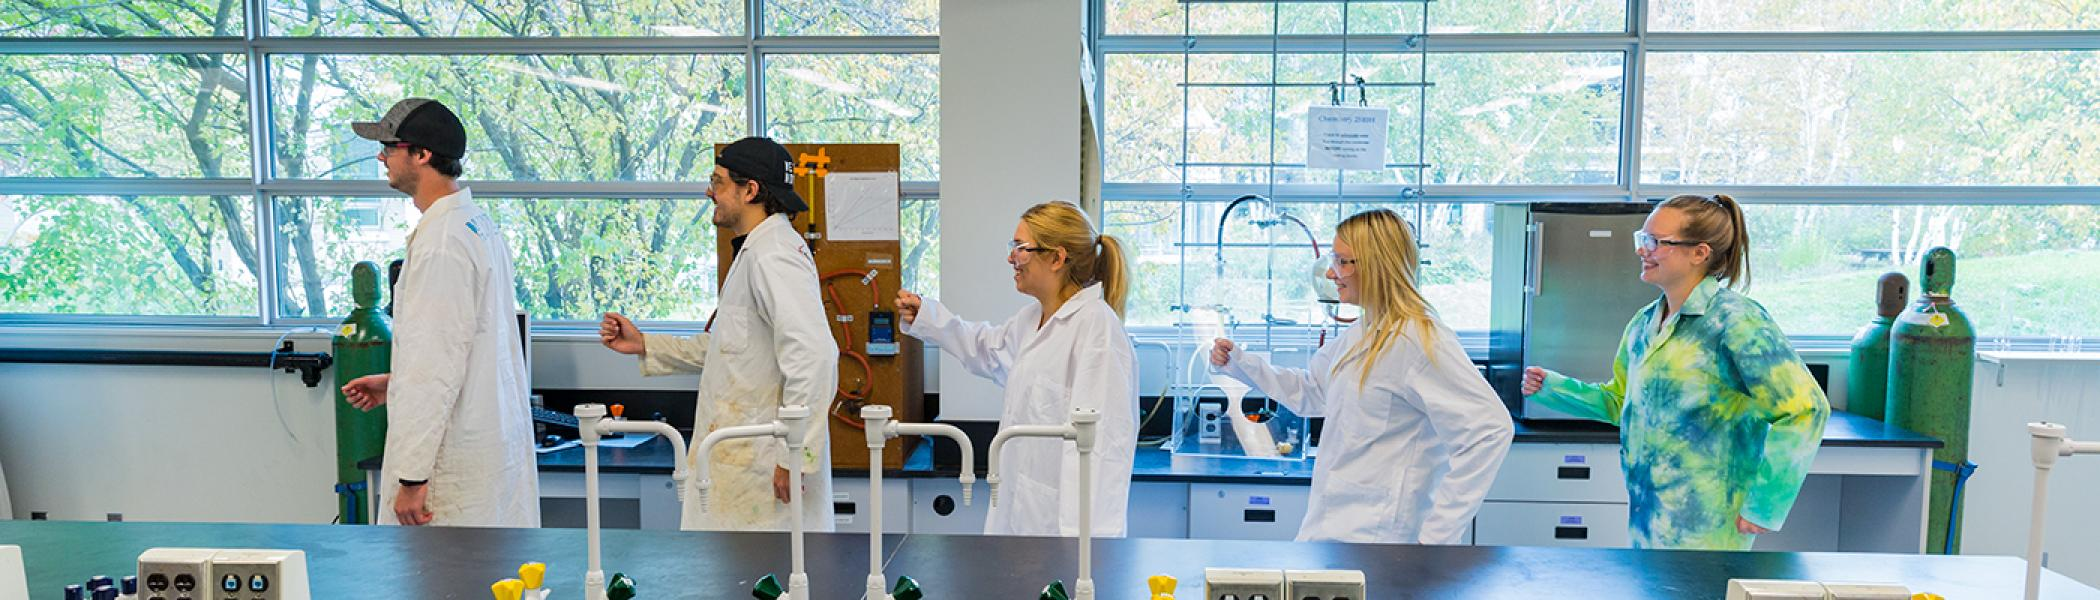 5 Chemistry students wearing white lab coats and safety glasses walking in single file in a chemistry lab with gas cylinders and equipment in the background